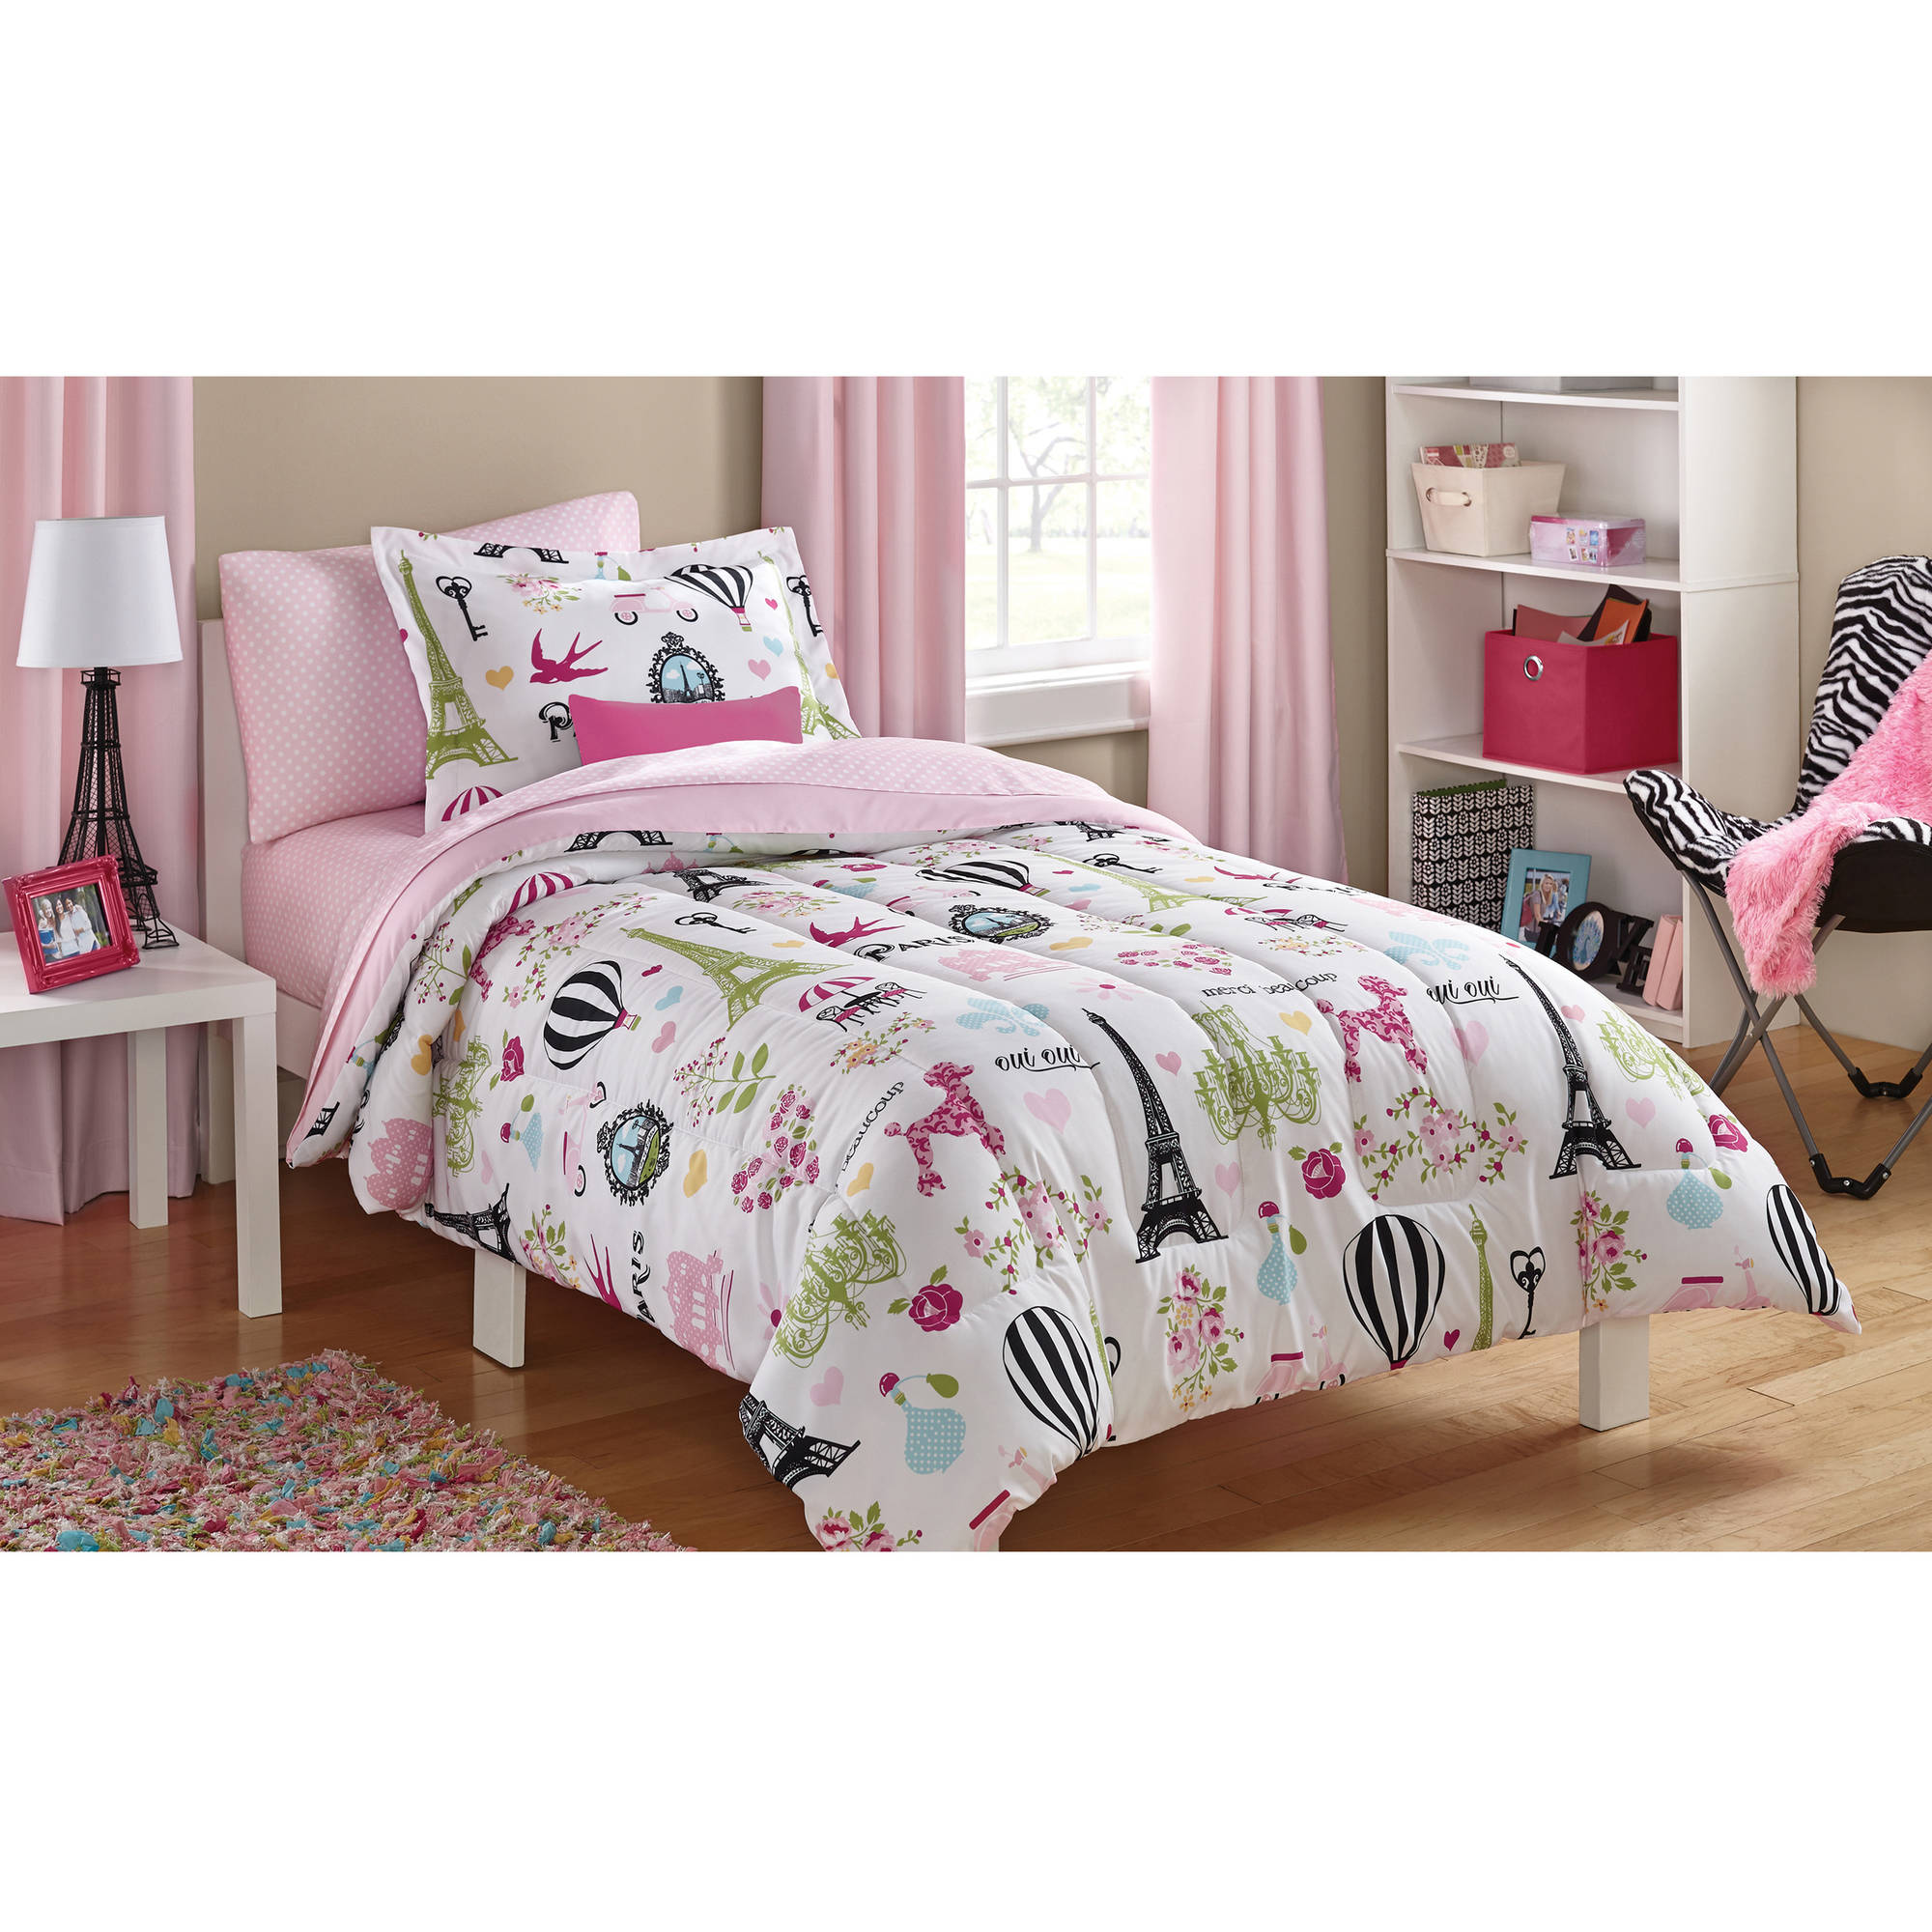 Bedding sets for women - Bedding Sets For Women 52